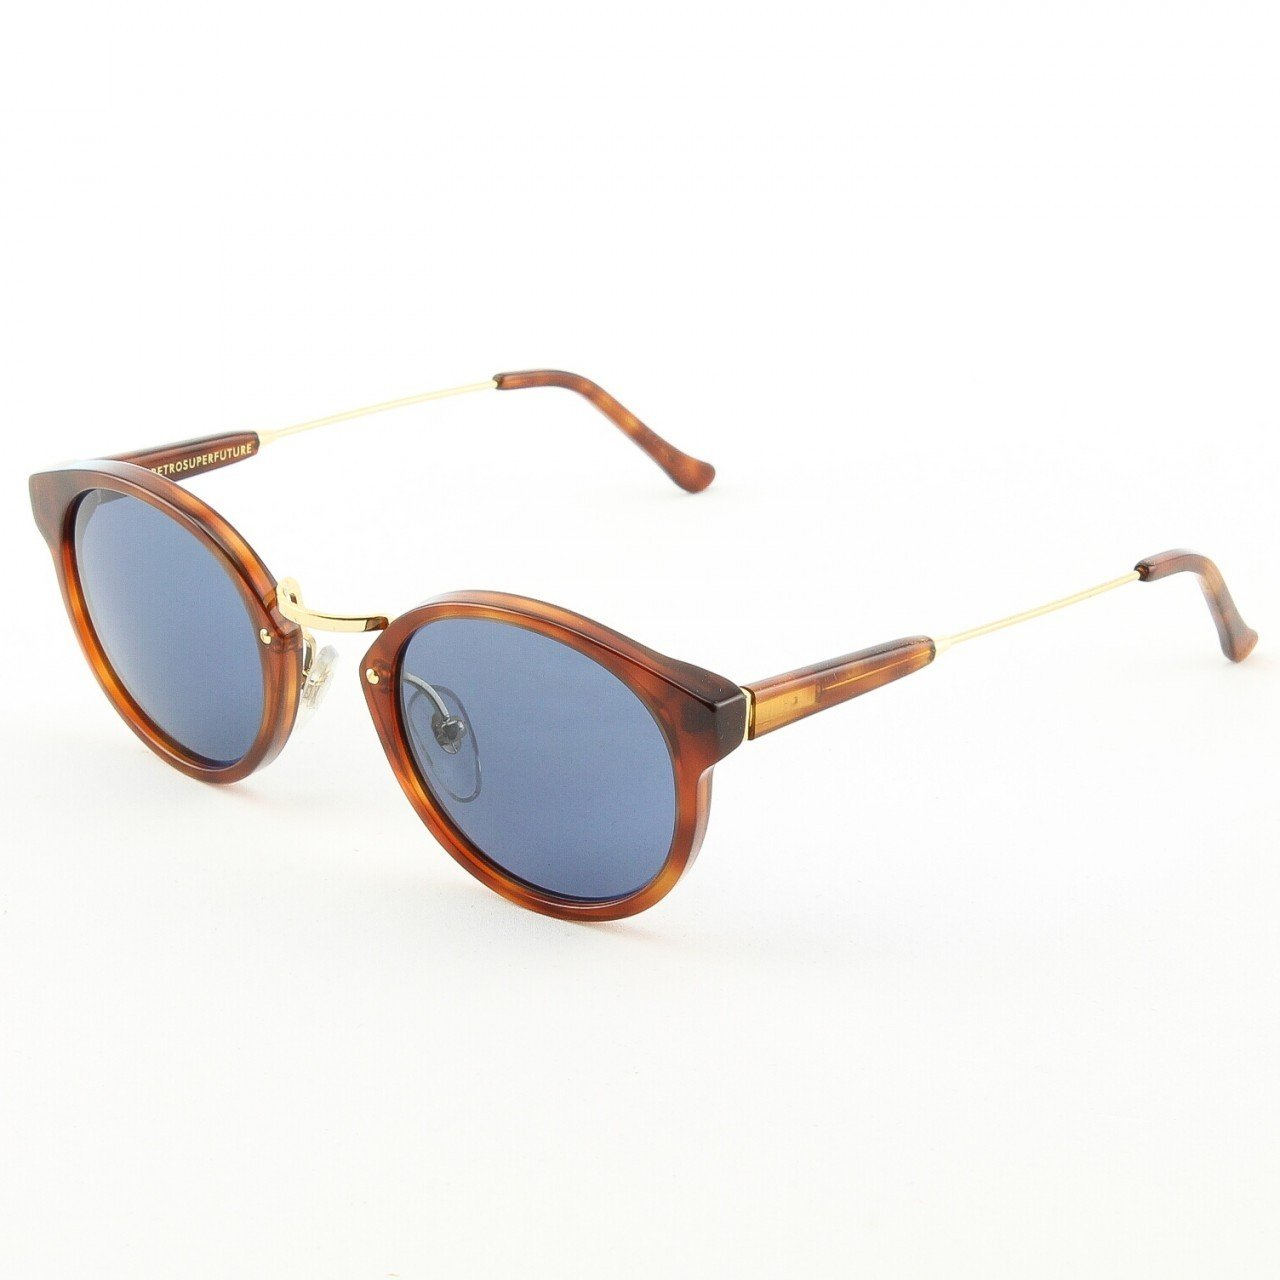 Super Panama 475/3T Sunglasses Color Brown Havana with Blue Zeiss Lenses by RETROSUPERFUTURE